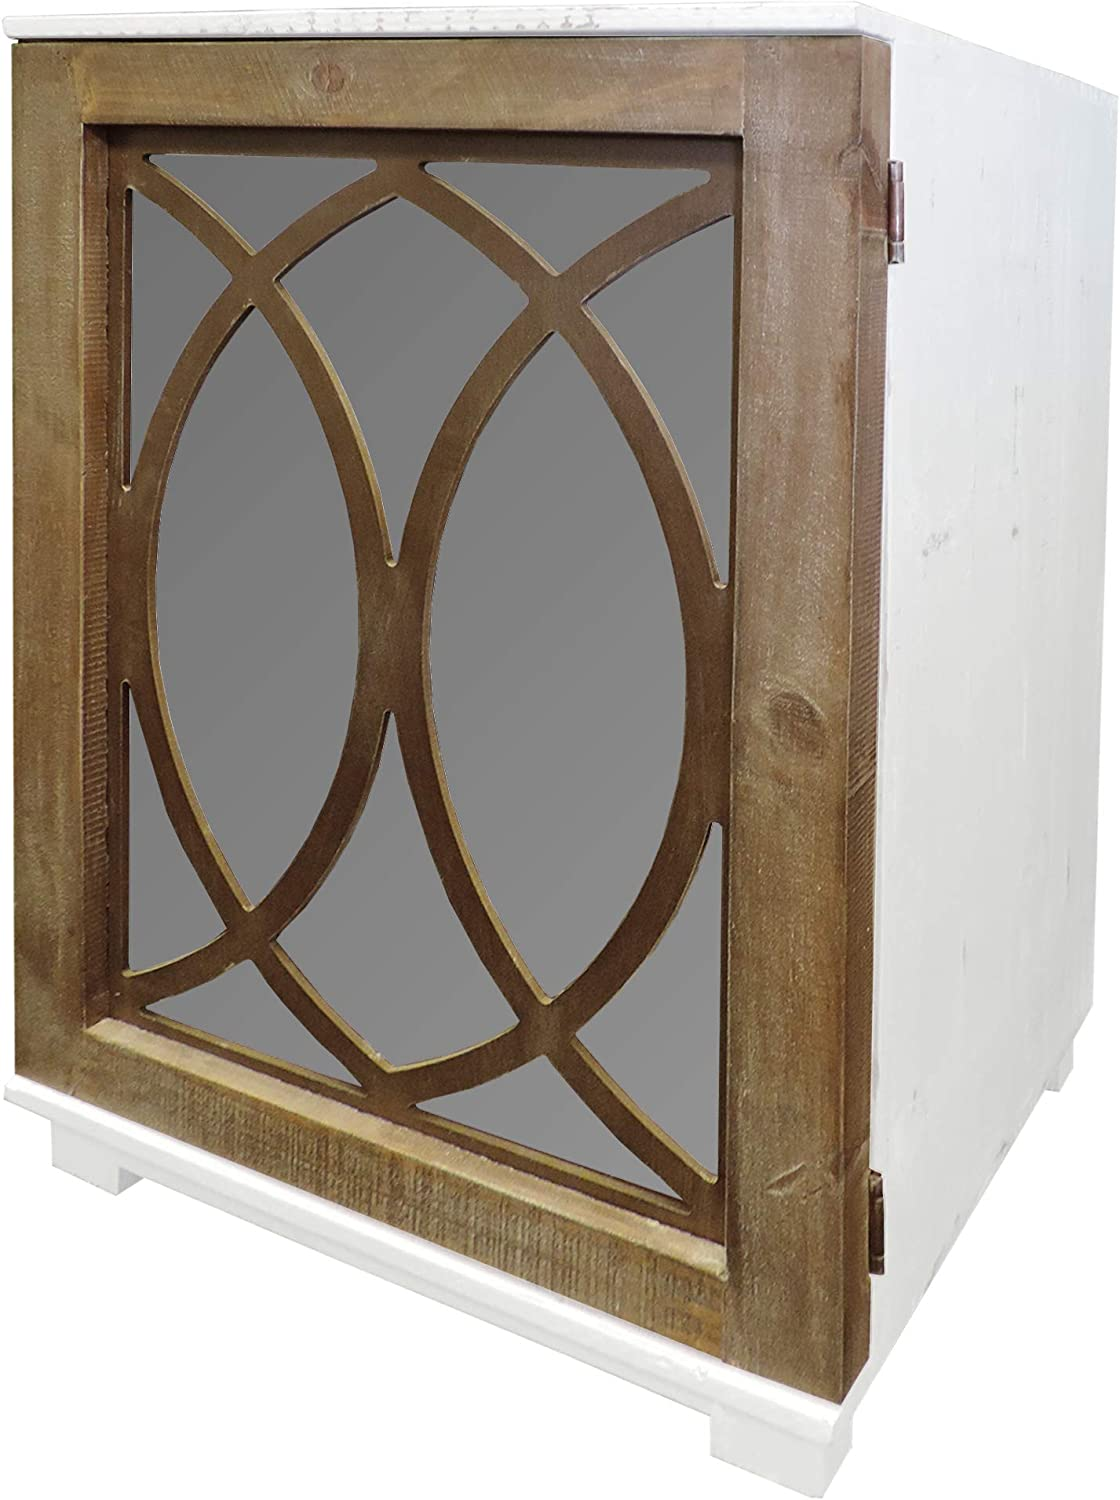 Tup The Urban Port Wooden Side Table with Lattice Pattern Mirrored Door Cabinet, White and Brown